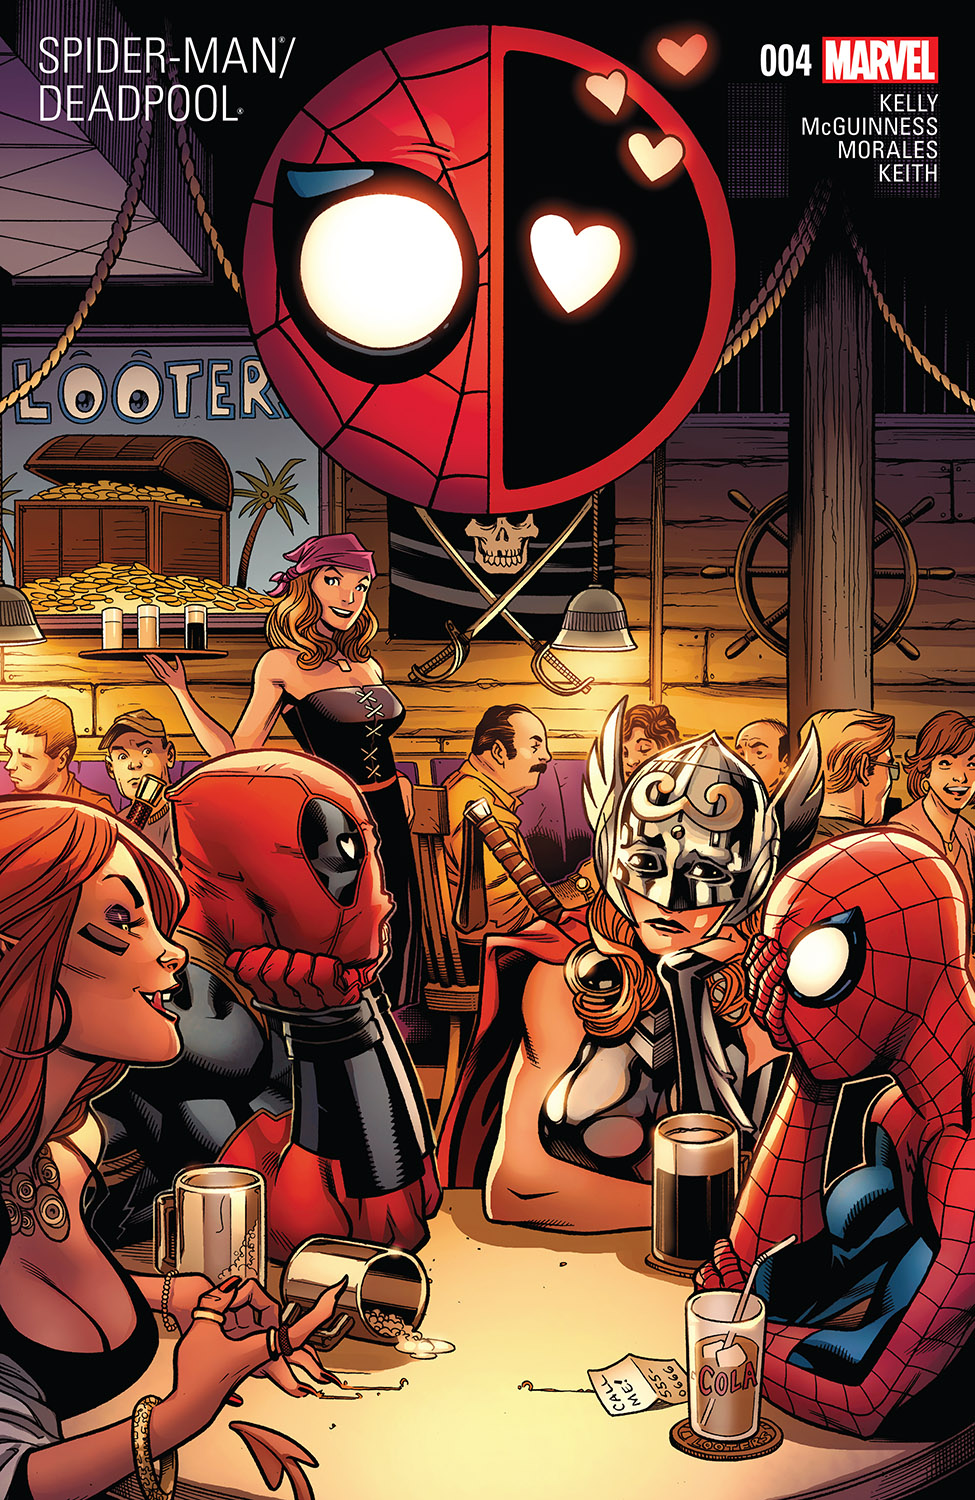 Spider-Man/Deadpool (2016) #4